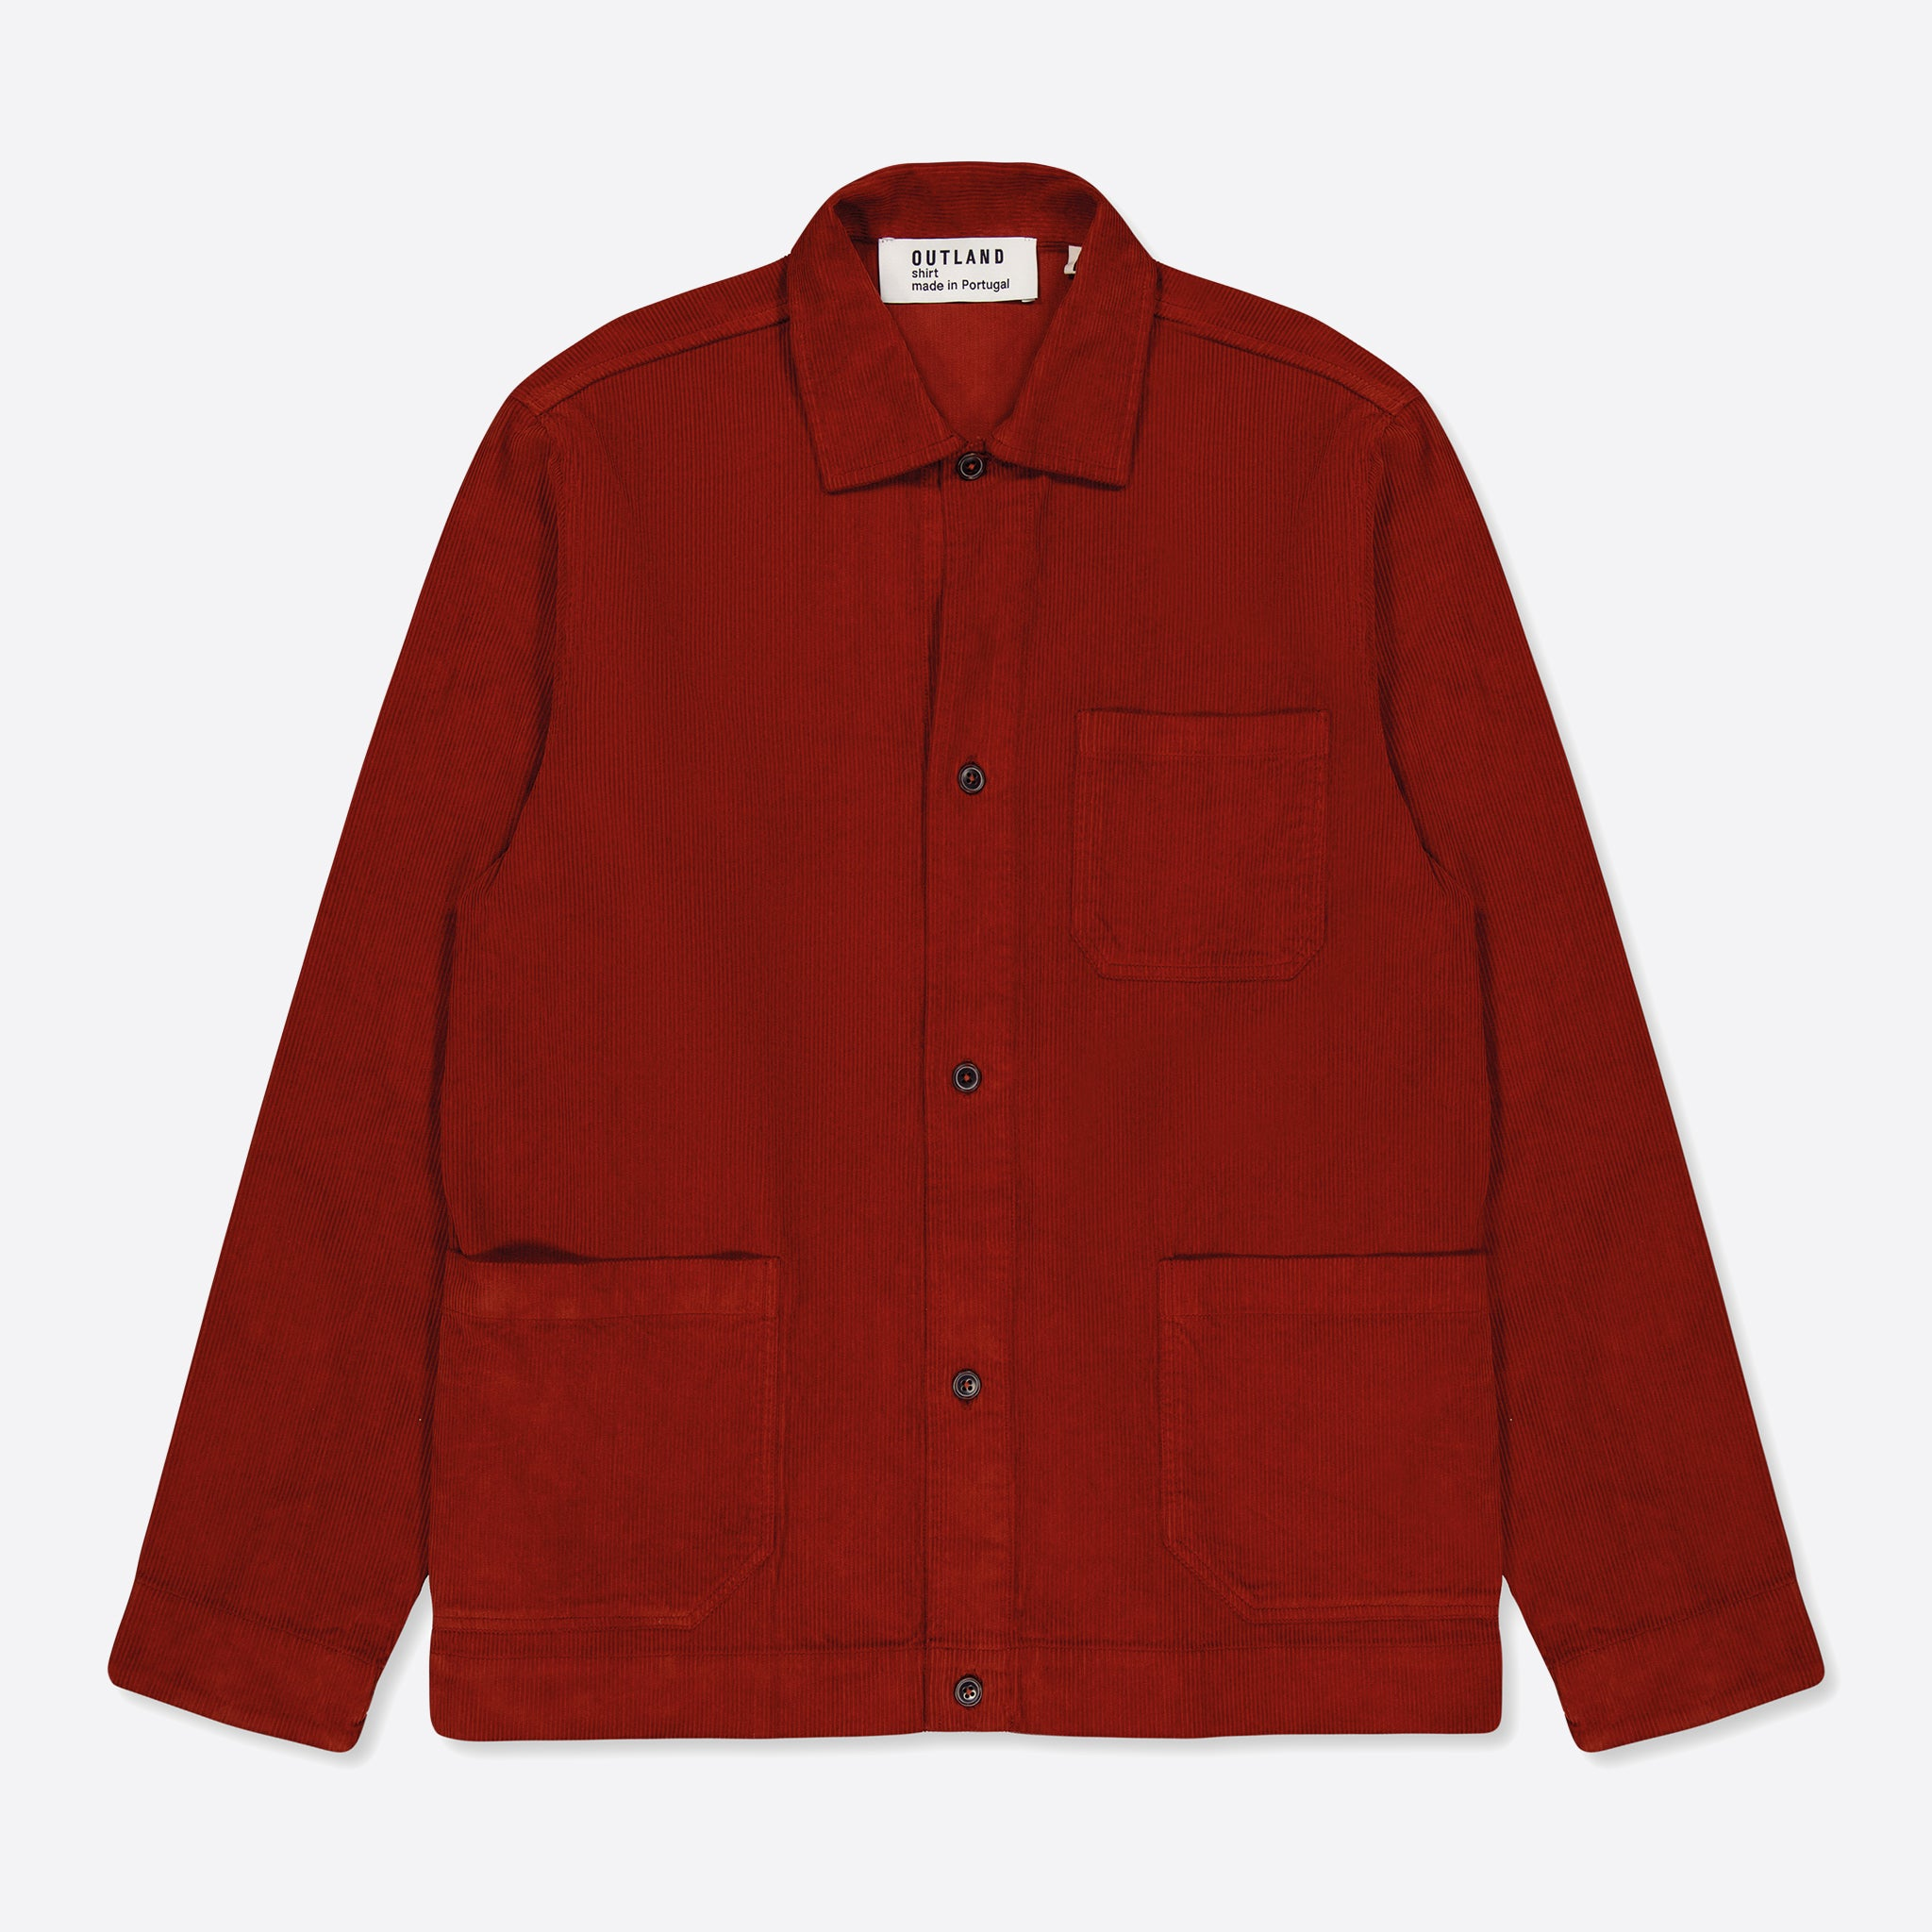 OUTLAND Saigon Overshirt in Rust